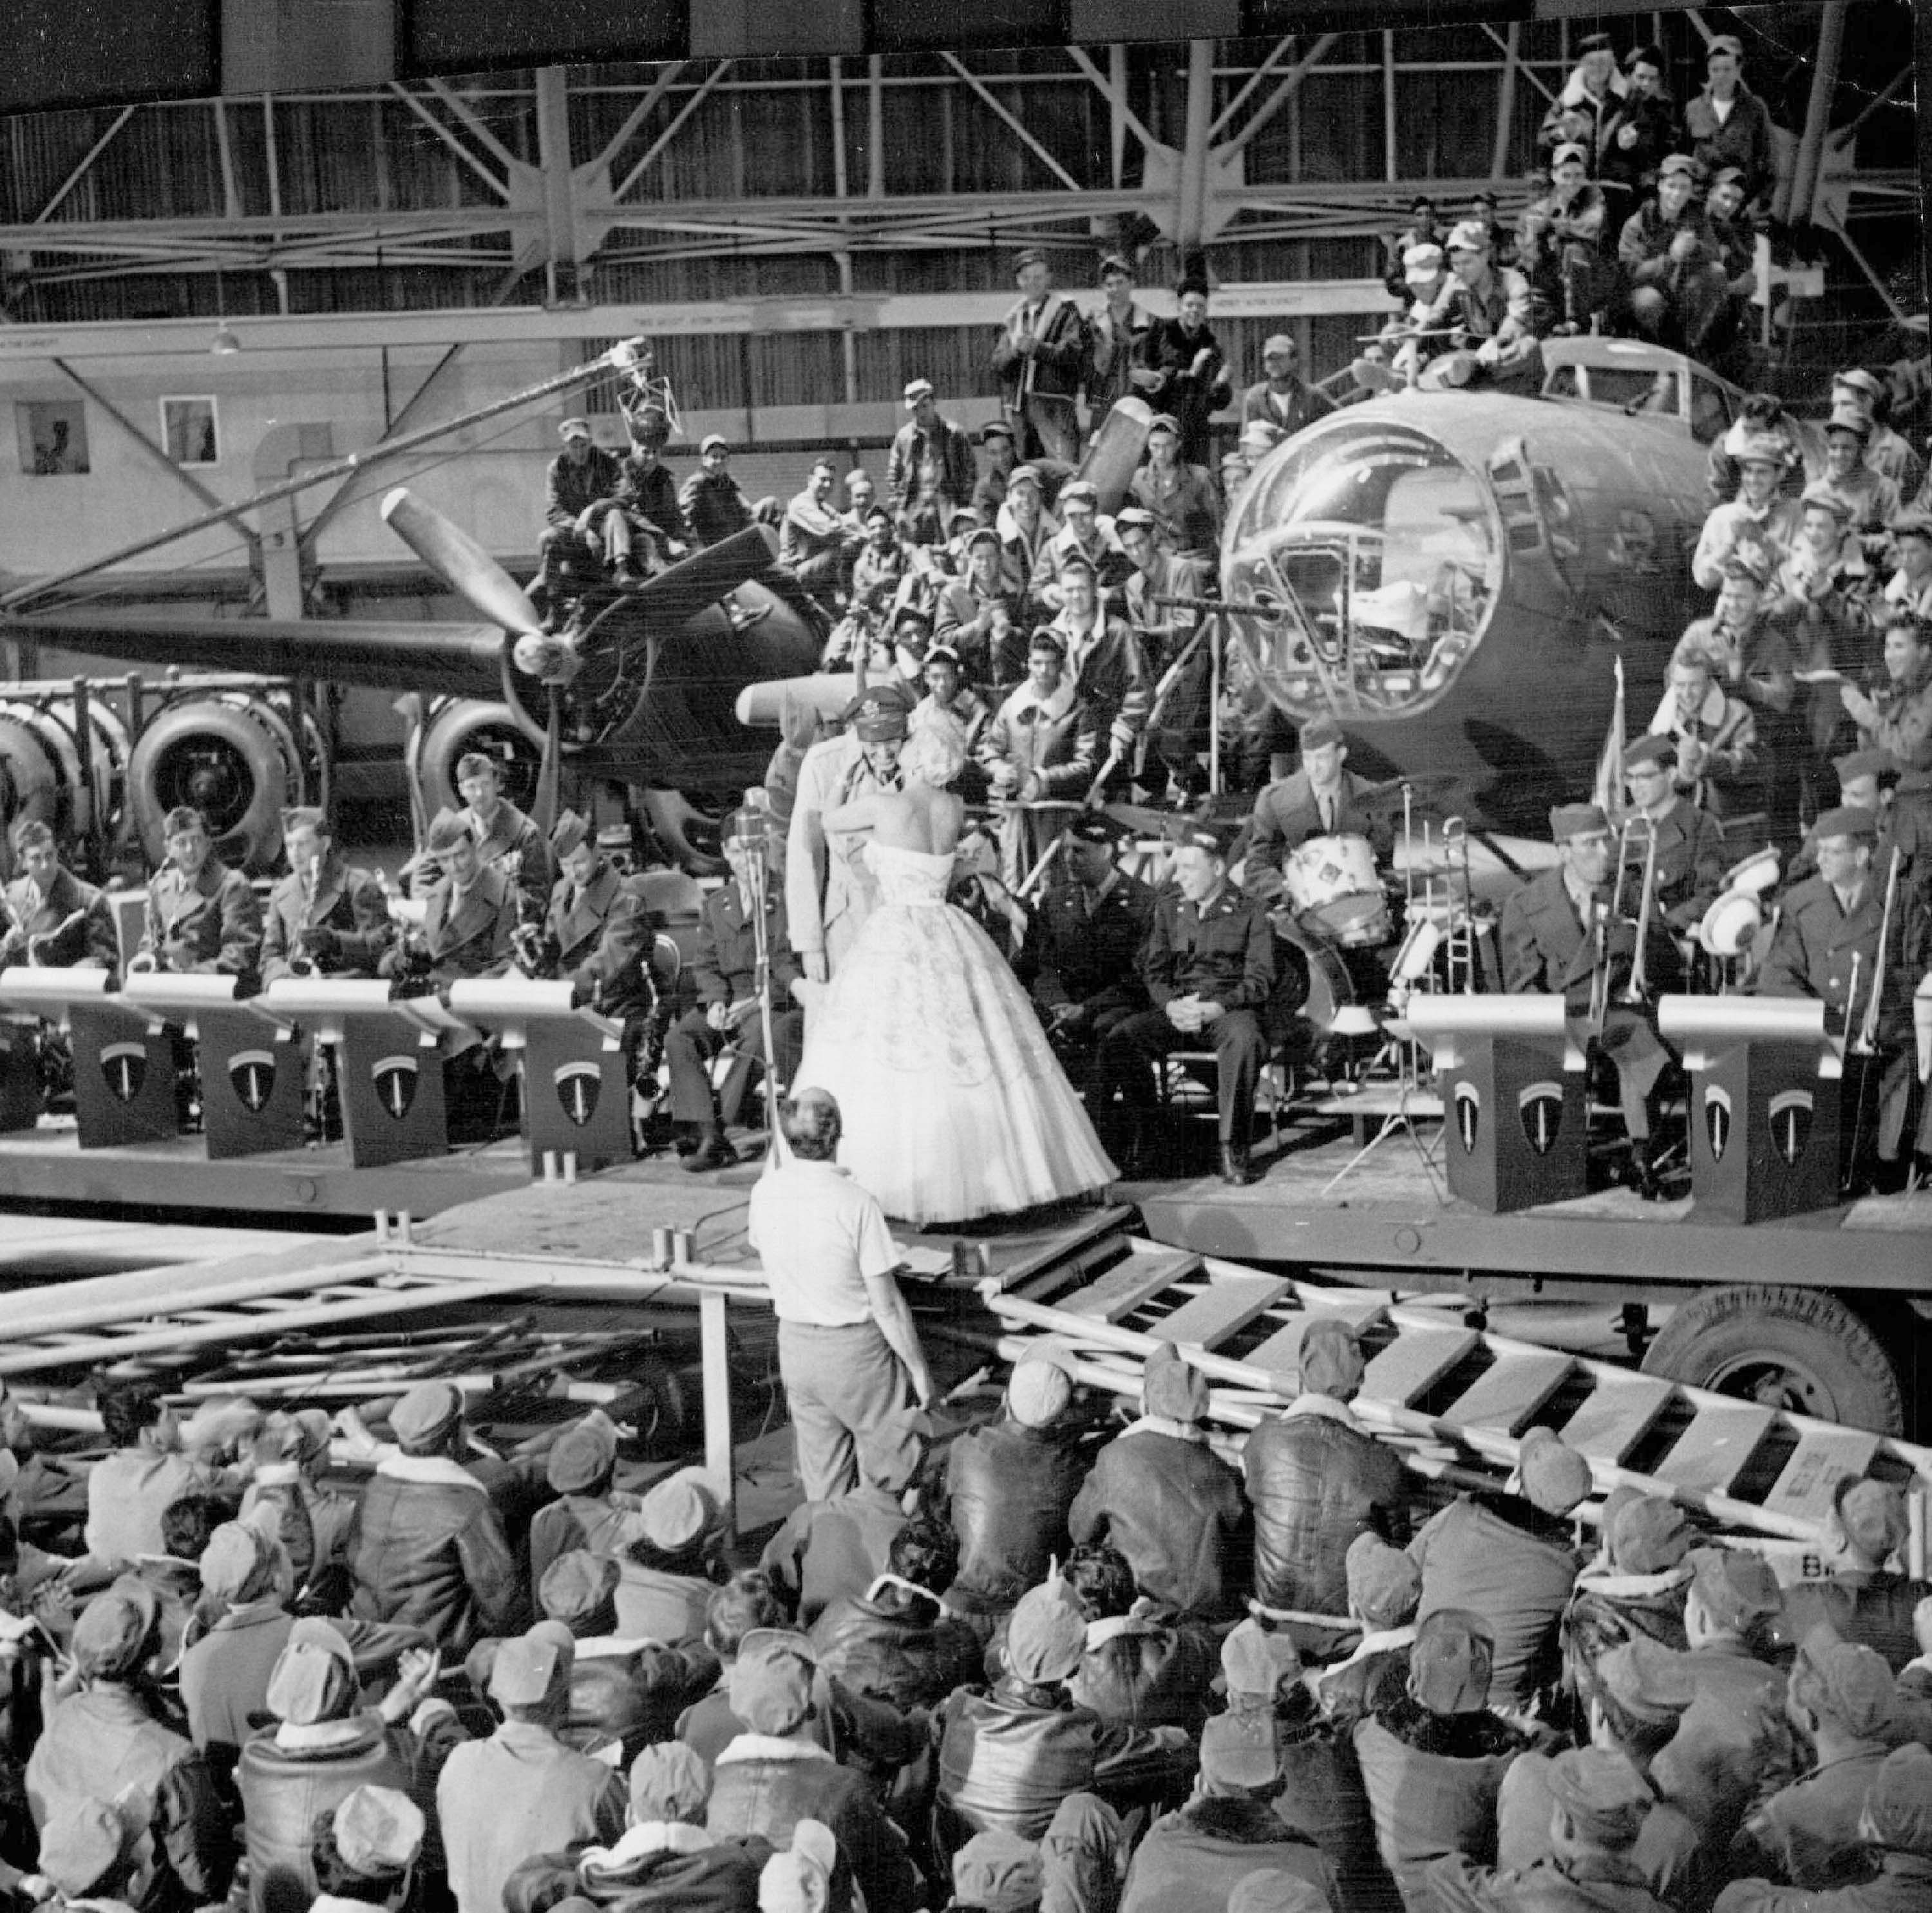 Moviemaking In Denver July 1953 When Frances Langford Kissed Jimmy Stewart During Rehearsal Of The Glenn Miller Story Airmen Perched On Wings Of The Comma